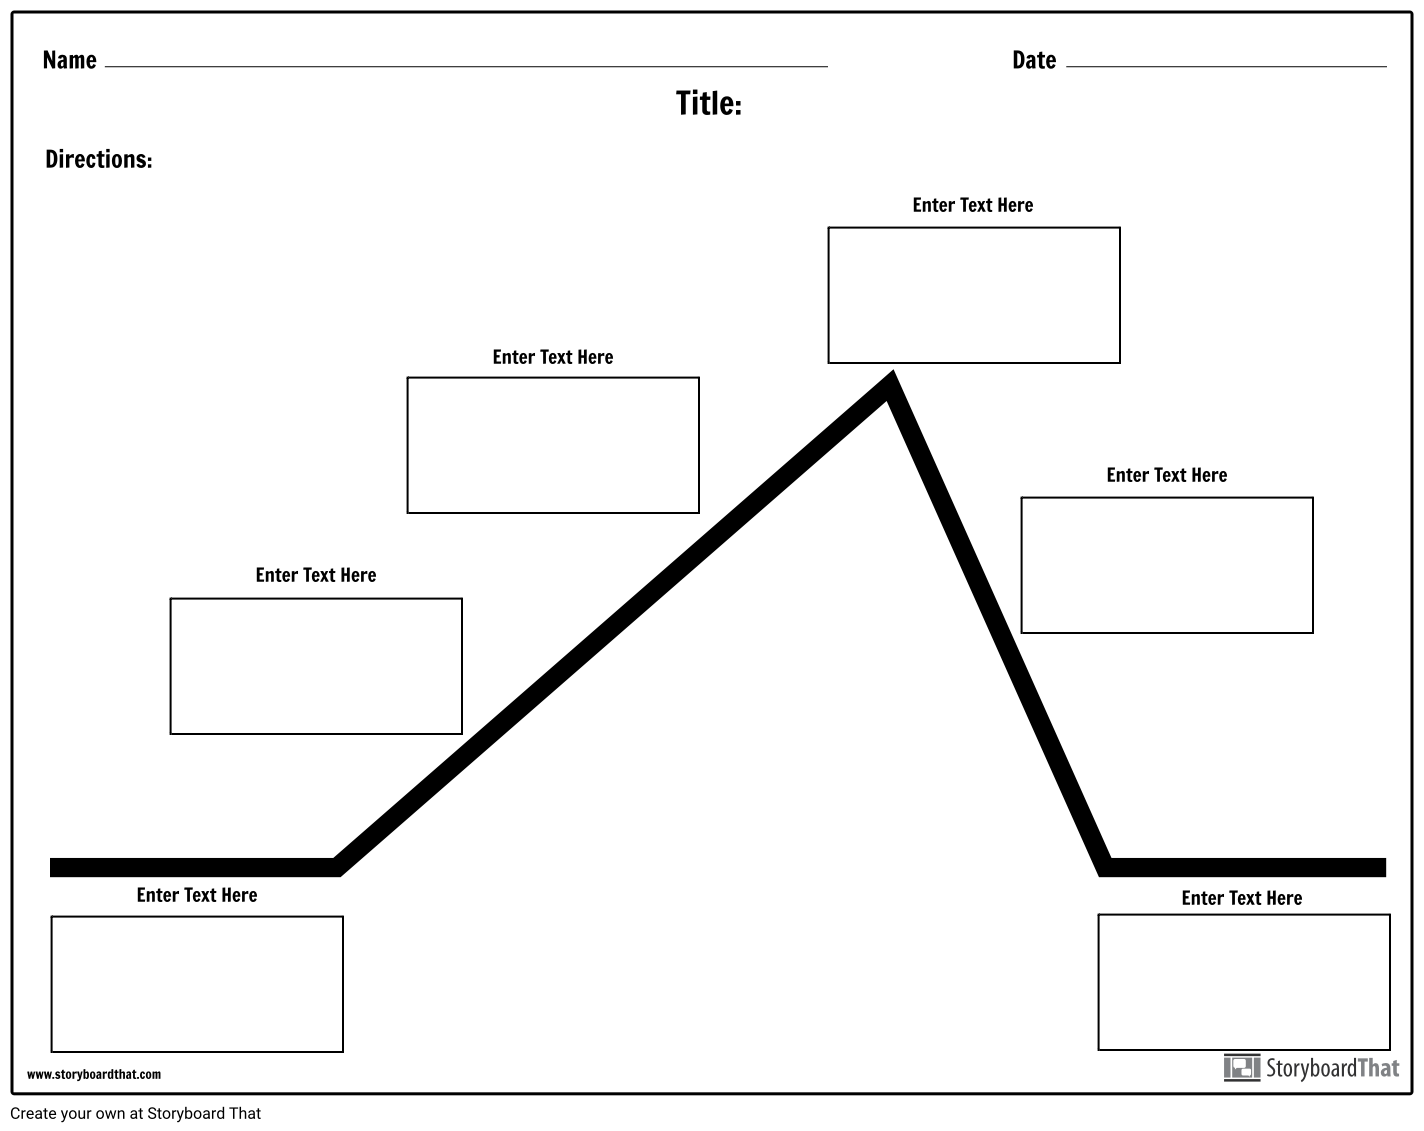 medium resolution of Use Storyboard That's worksheet maker to create Plot Diagram Worksheets!  Use one of the many templates to…   Plot diagram